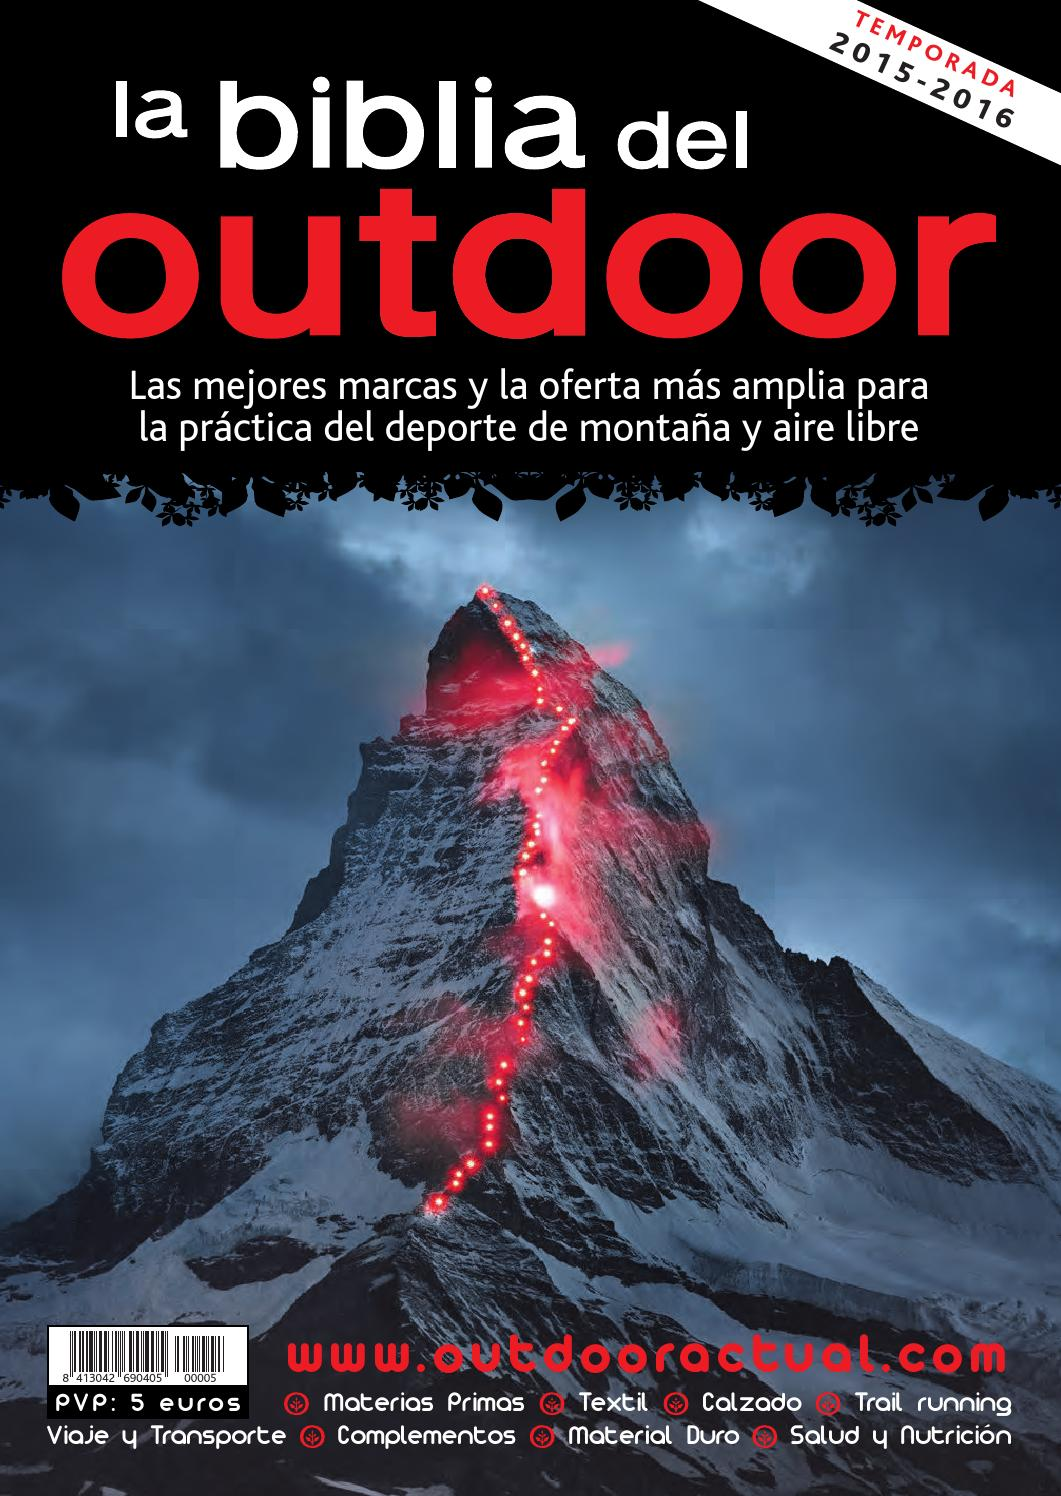 new styles 36777 c5594 La Biblia del Outdoor 2015-16 by Outdoor Actual - issuu